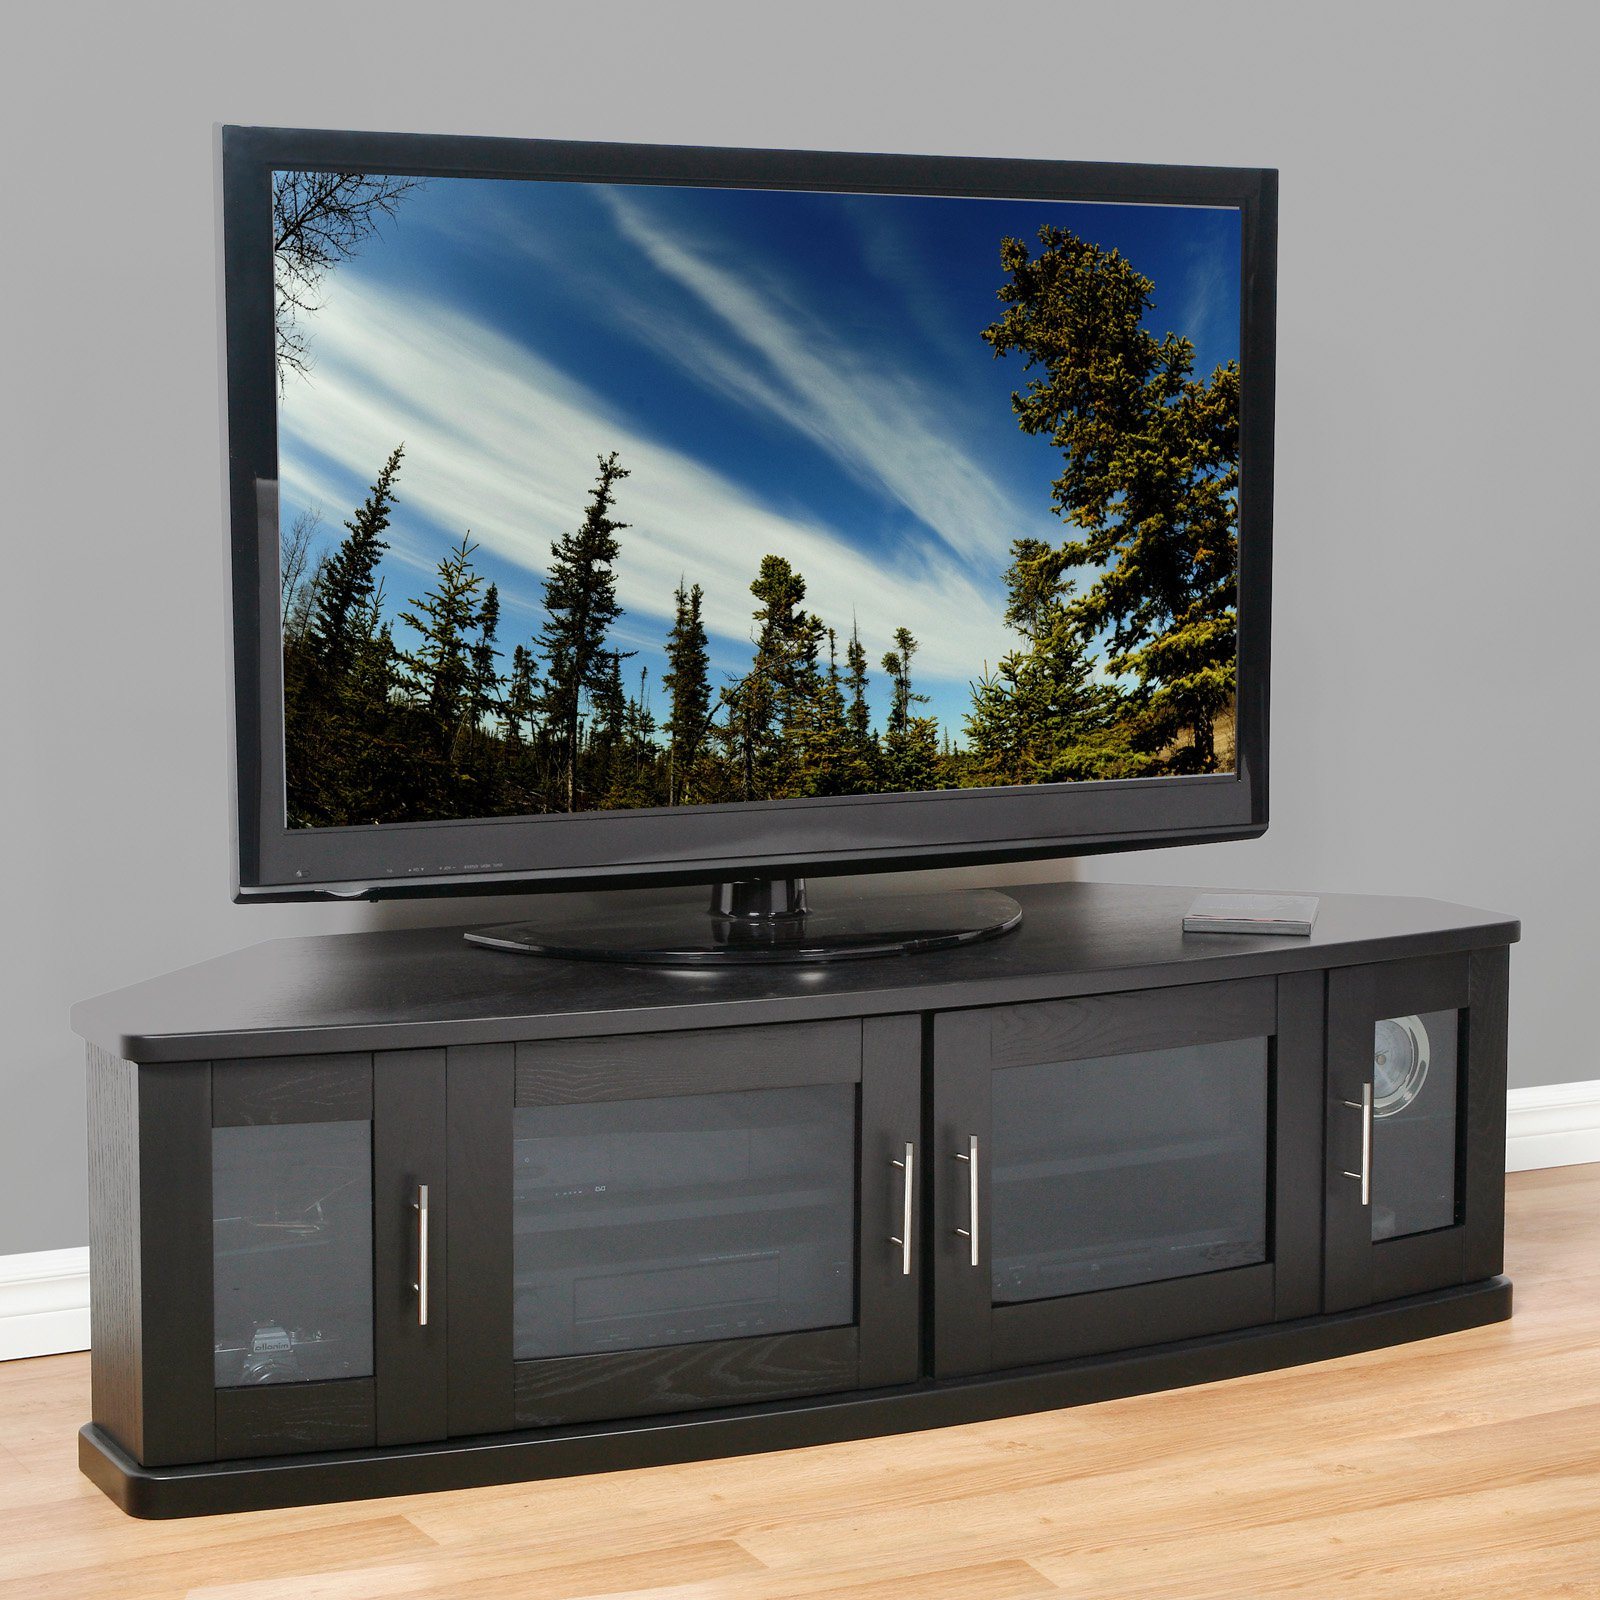 Walmart 75 Inch Tv Stand > Iammrfoster In Space Saving Gaming Storage Tv Stands (View 3 of 20)